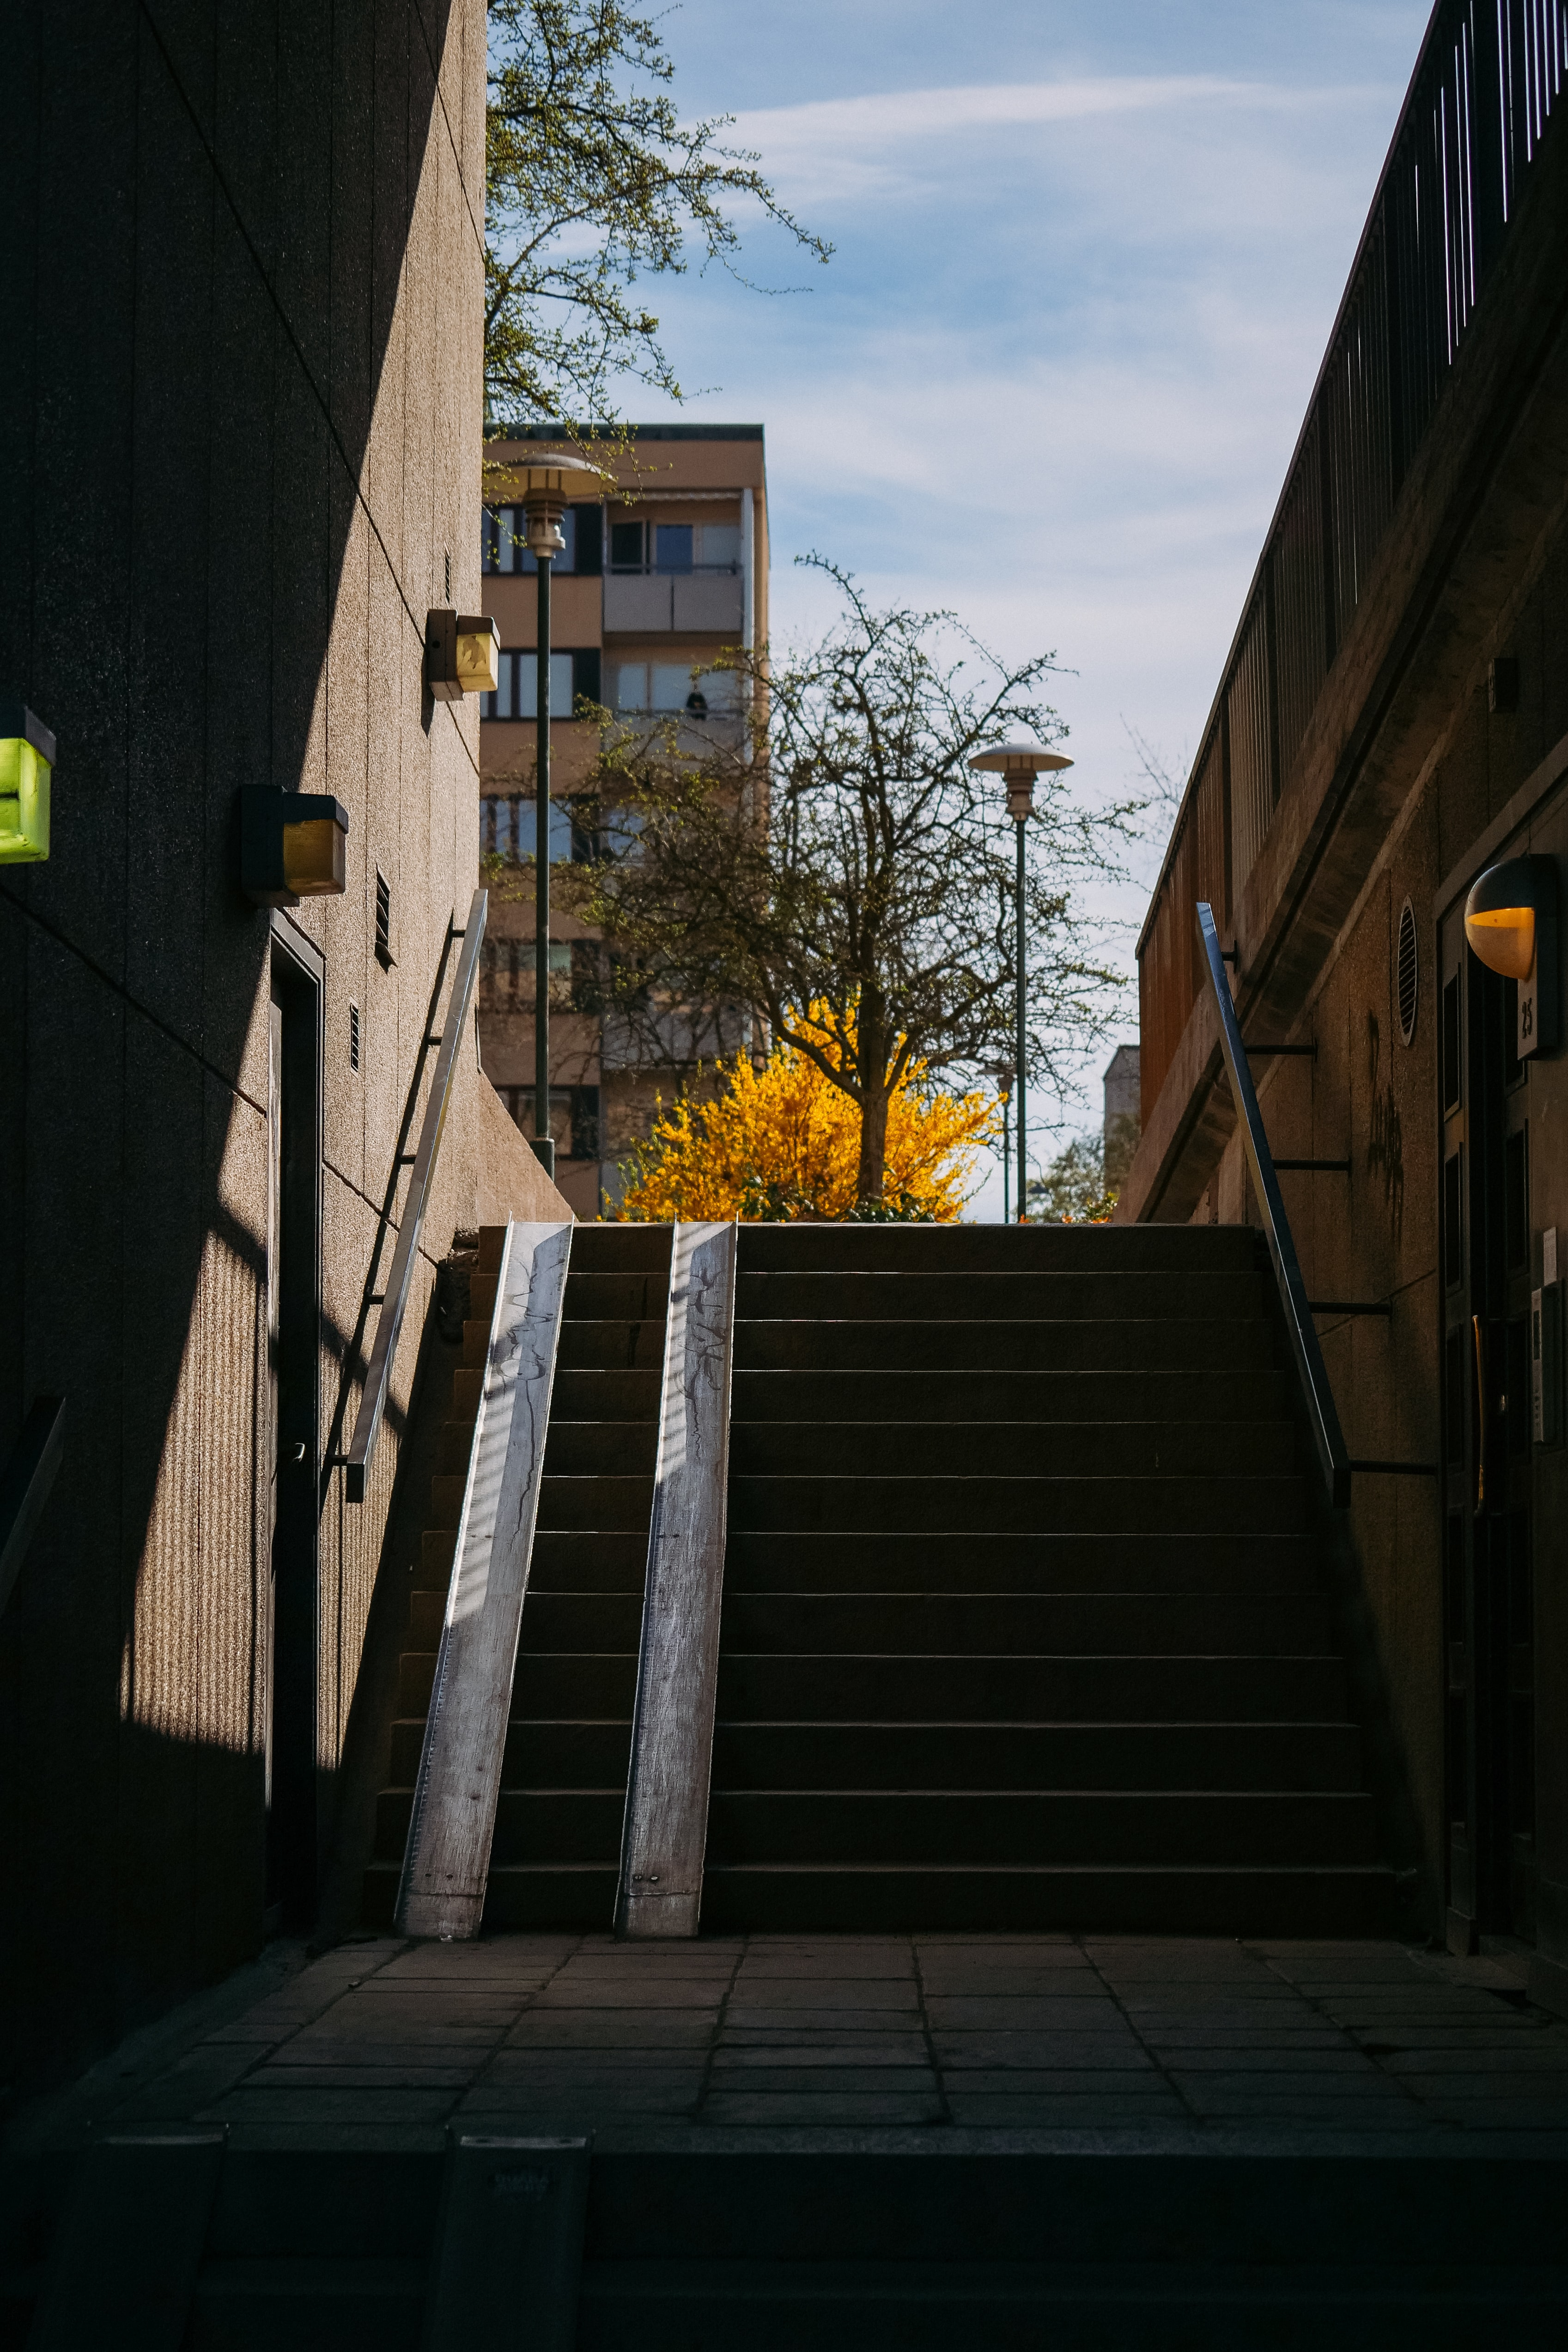 empty stairs during daytime